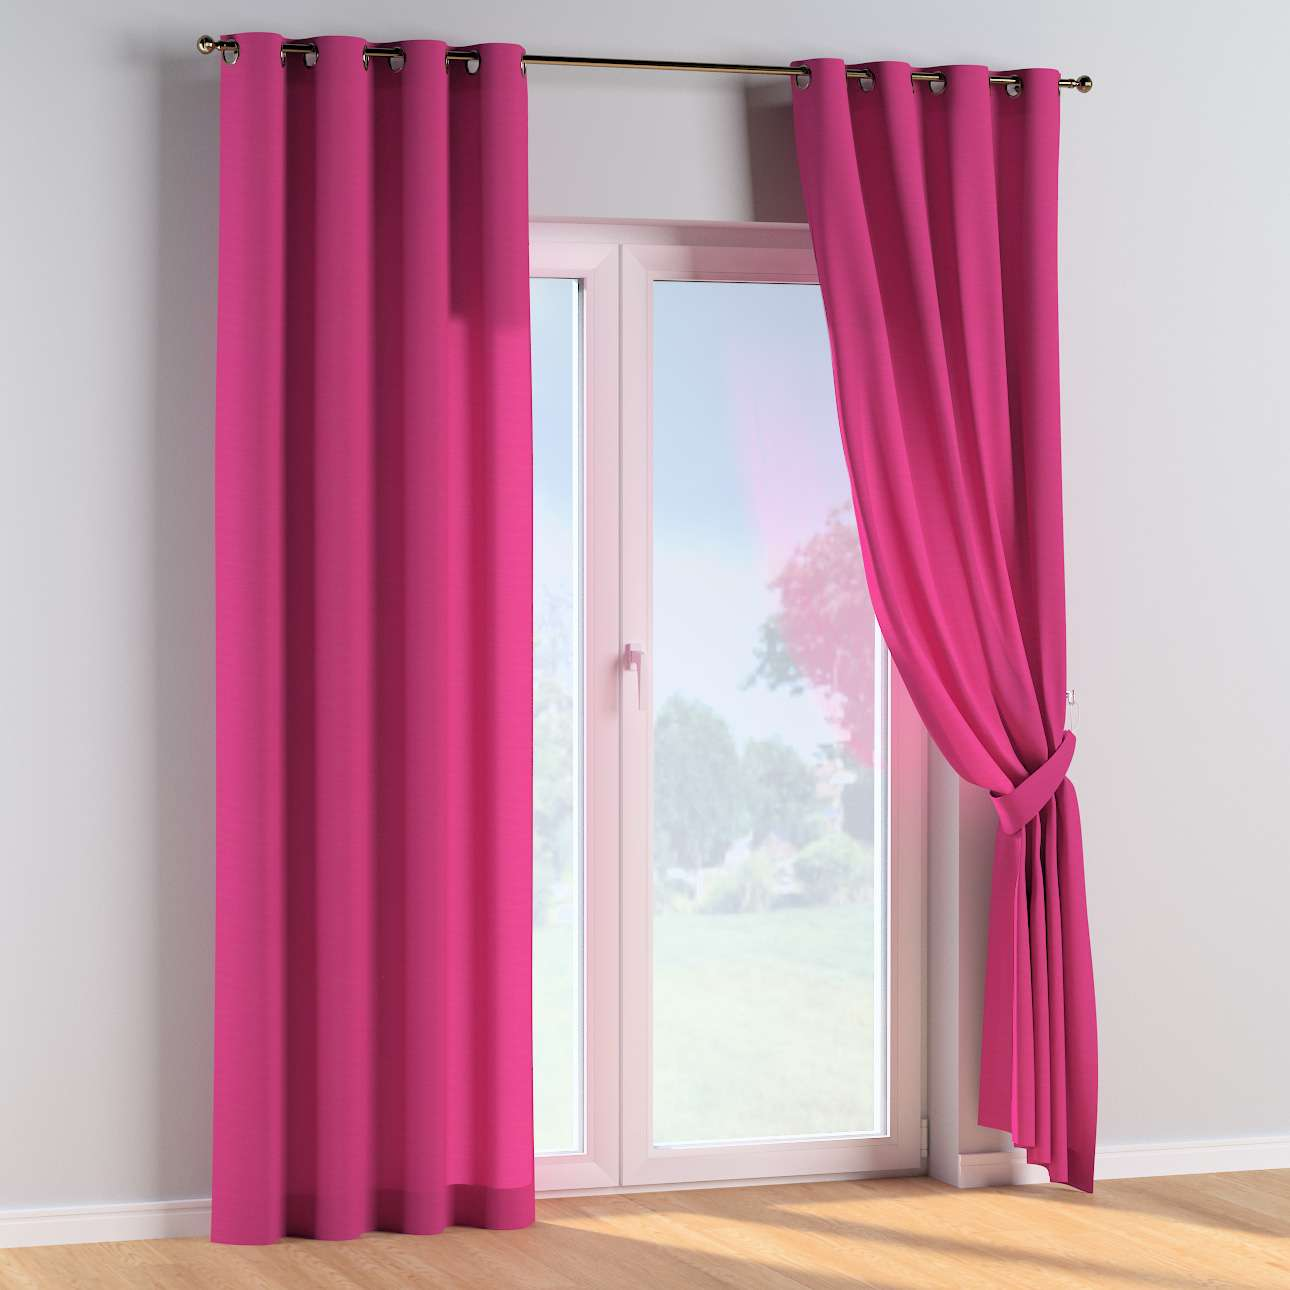 Eyelet curtains in collection Happiness, fabric: 133-60